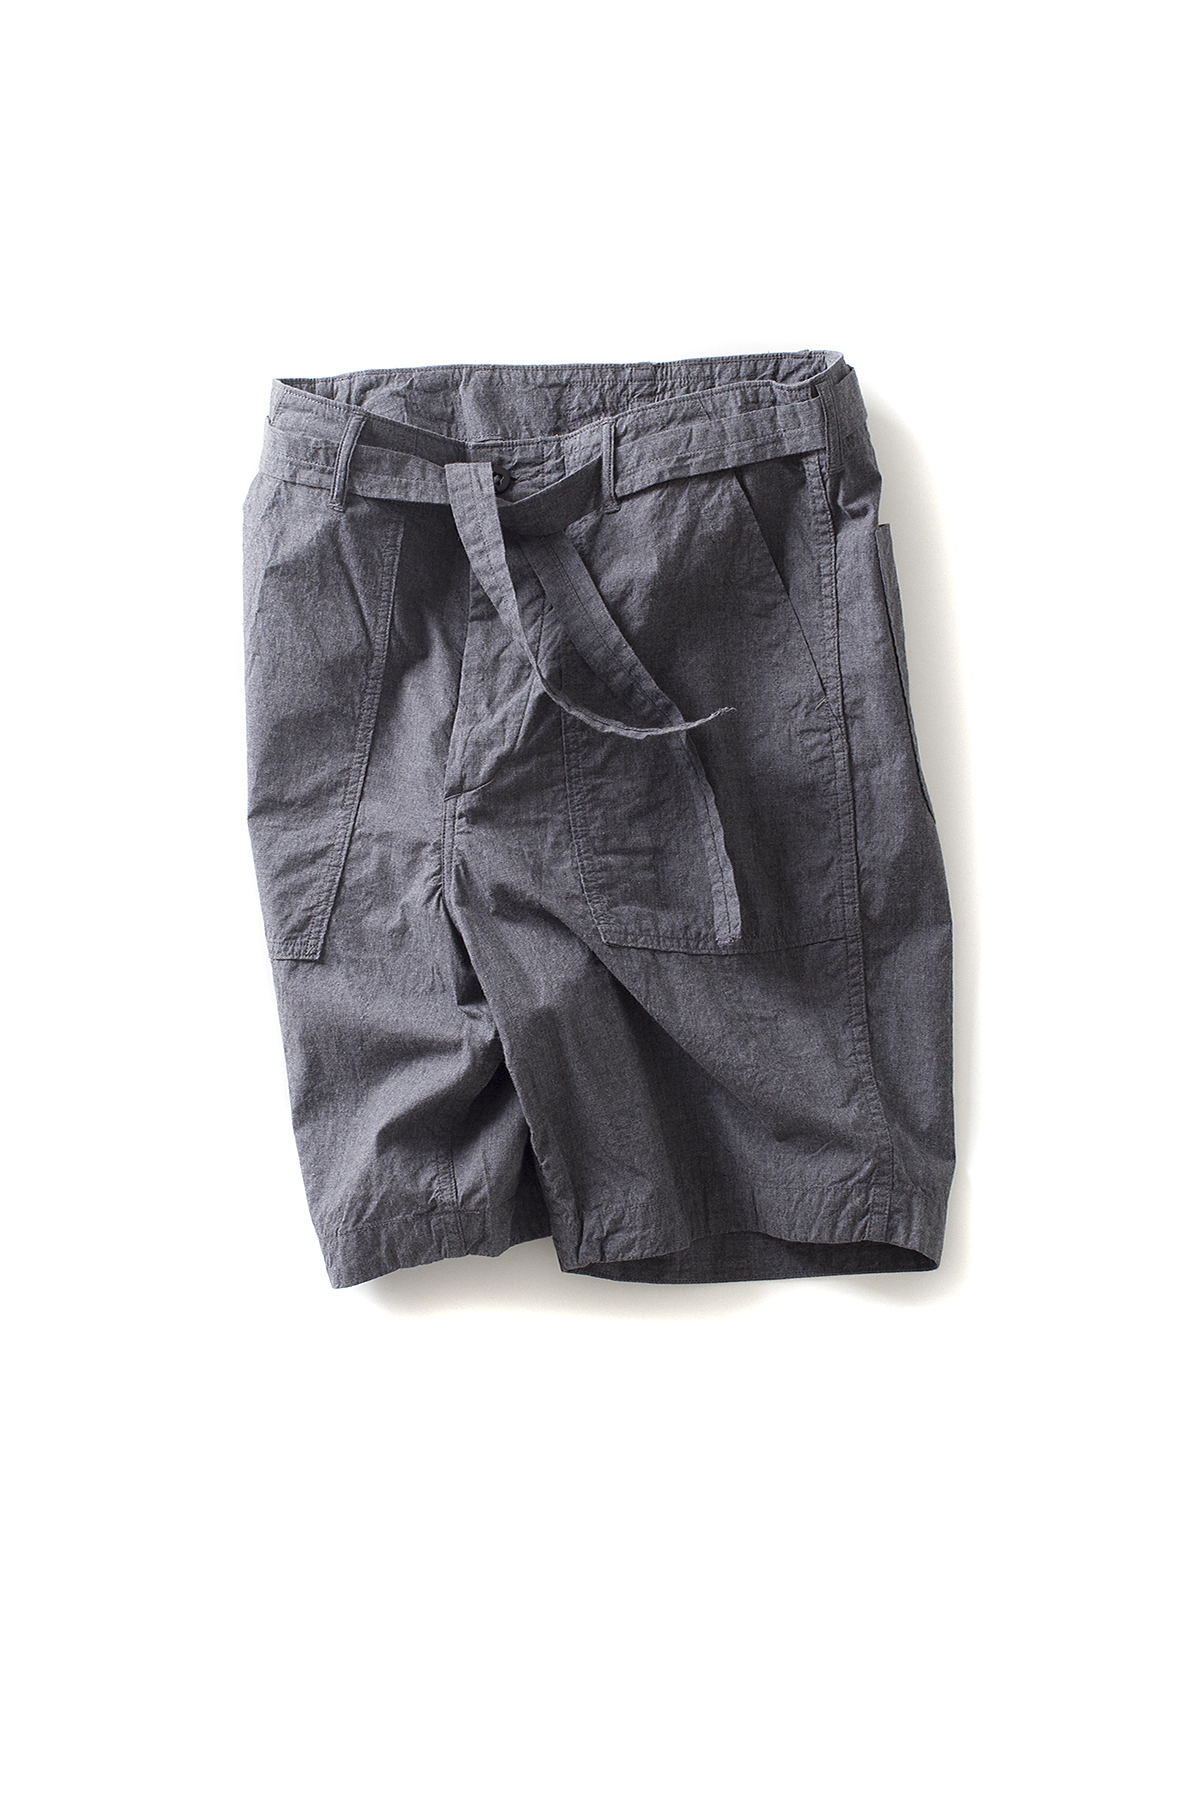 A vontade : Utility Shorts W/Belt (Charcoal)